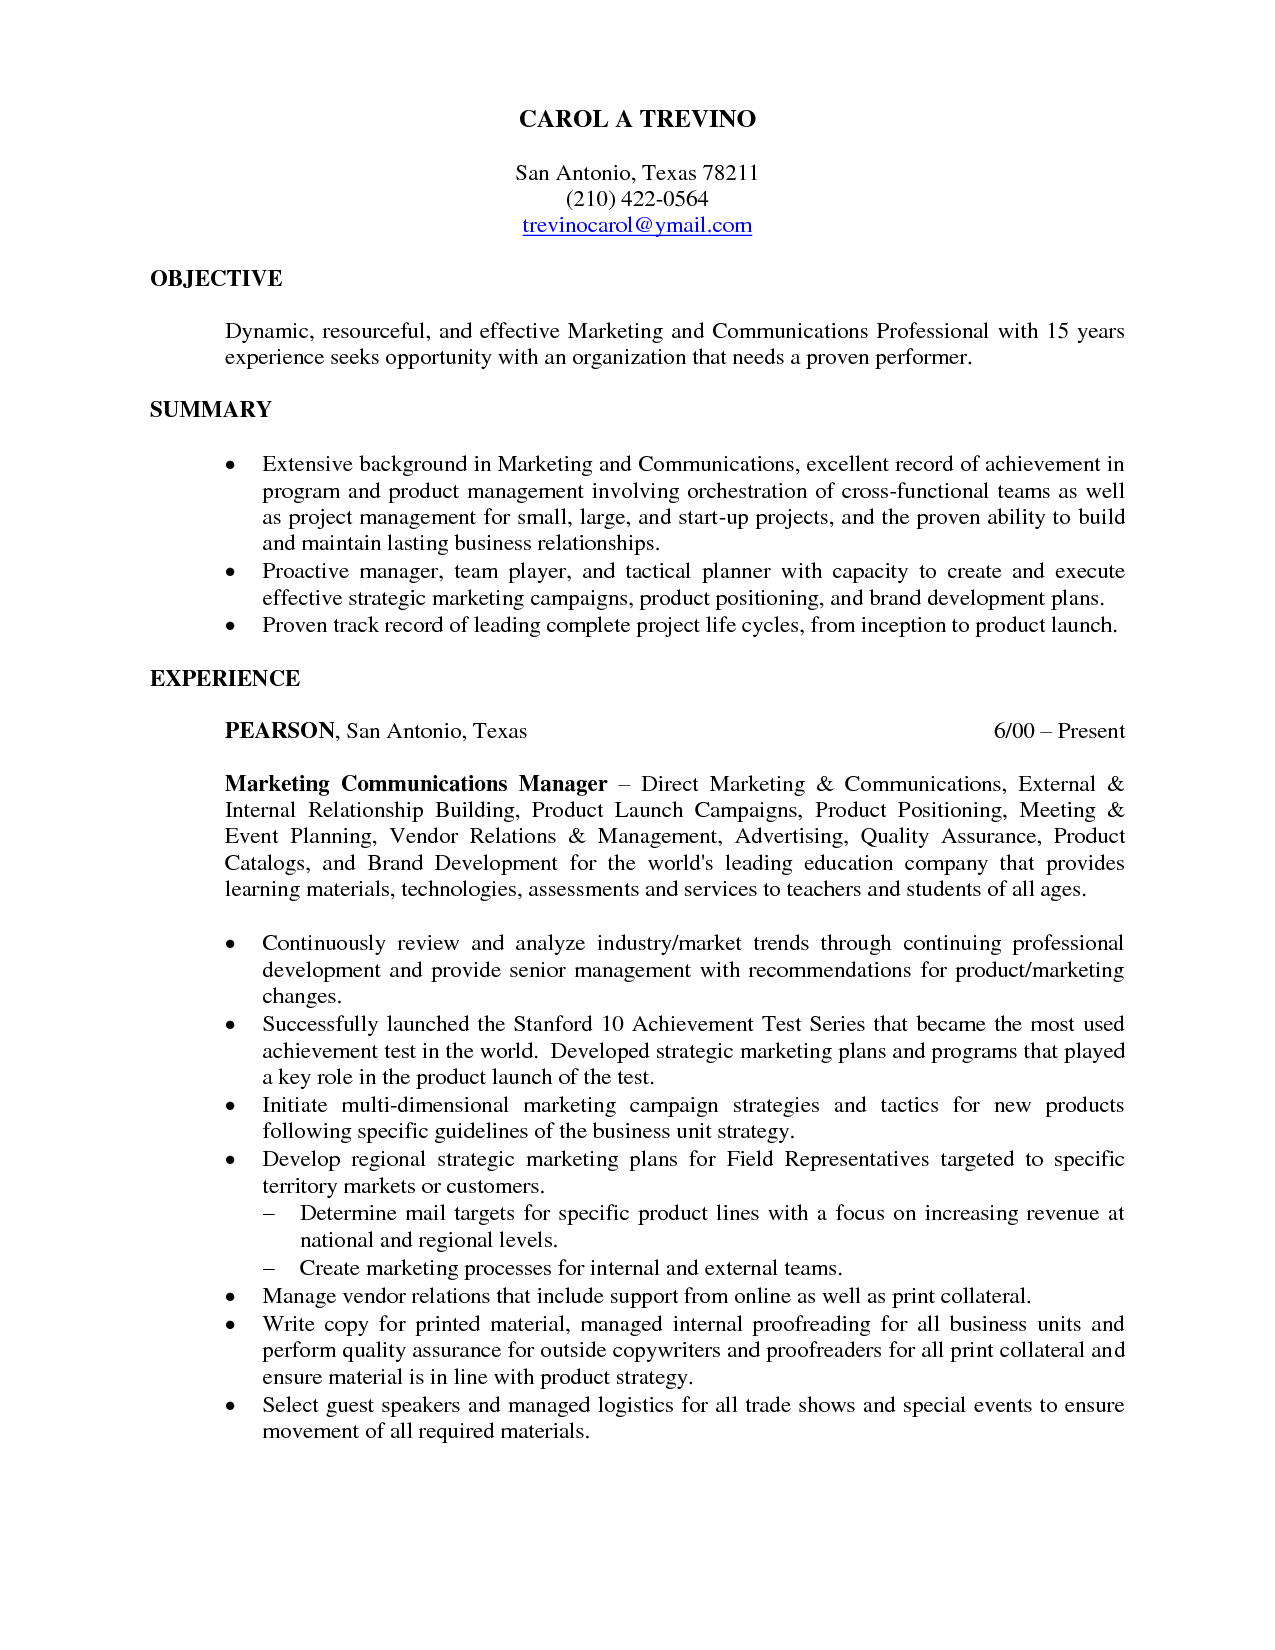 Best Objective Statements For Resumes 15 Objective Resume Examples Samplebusinessresume